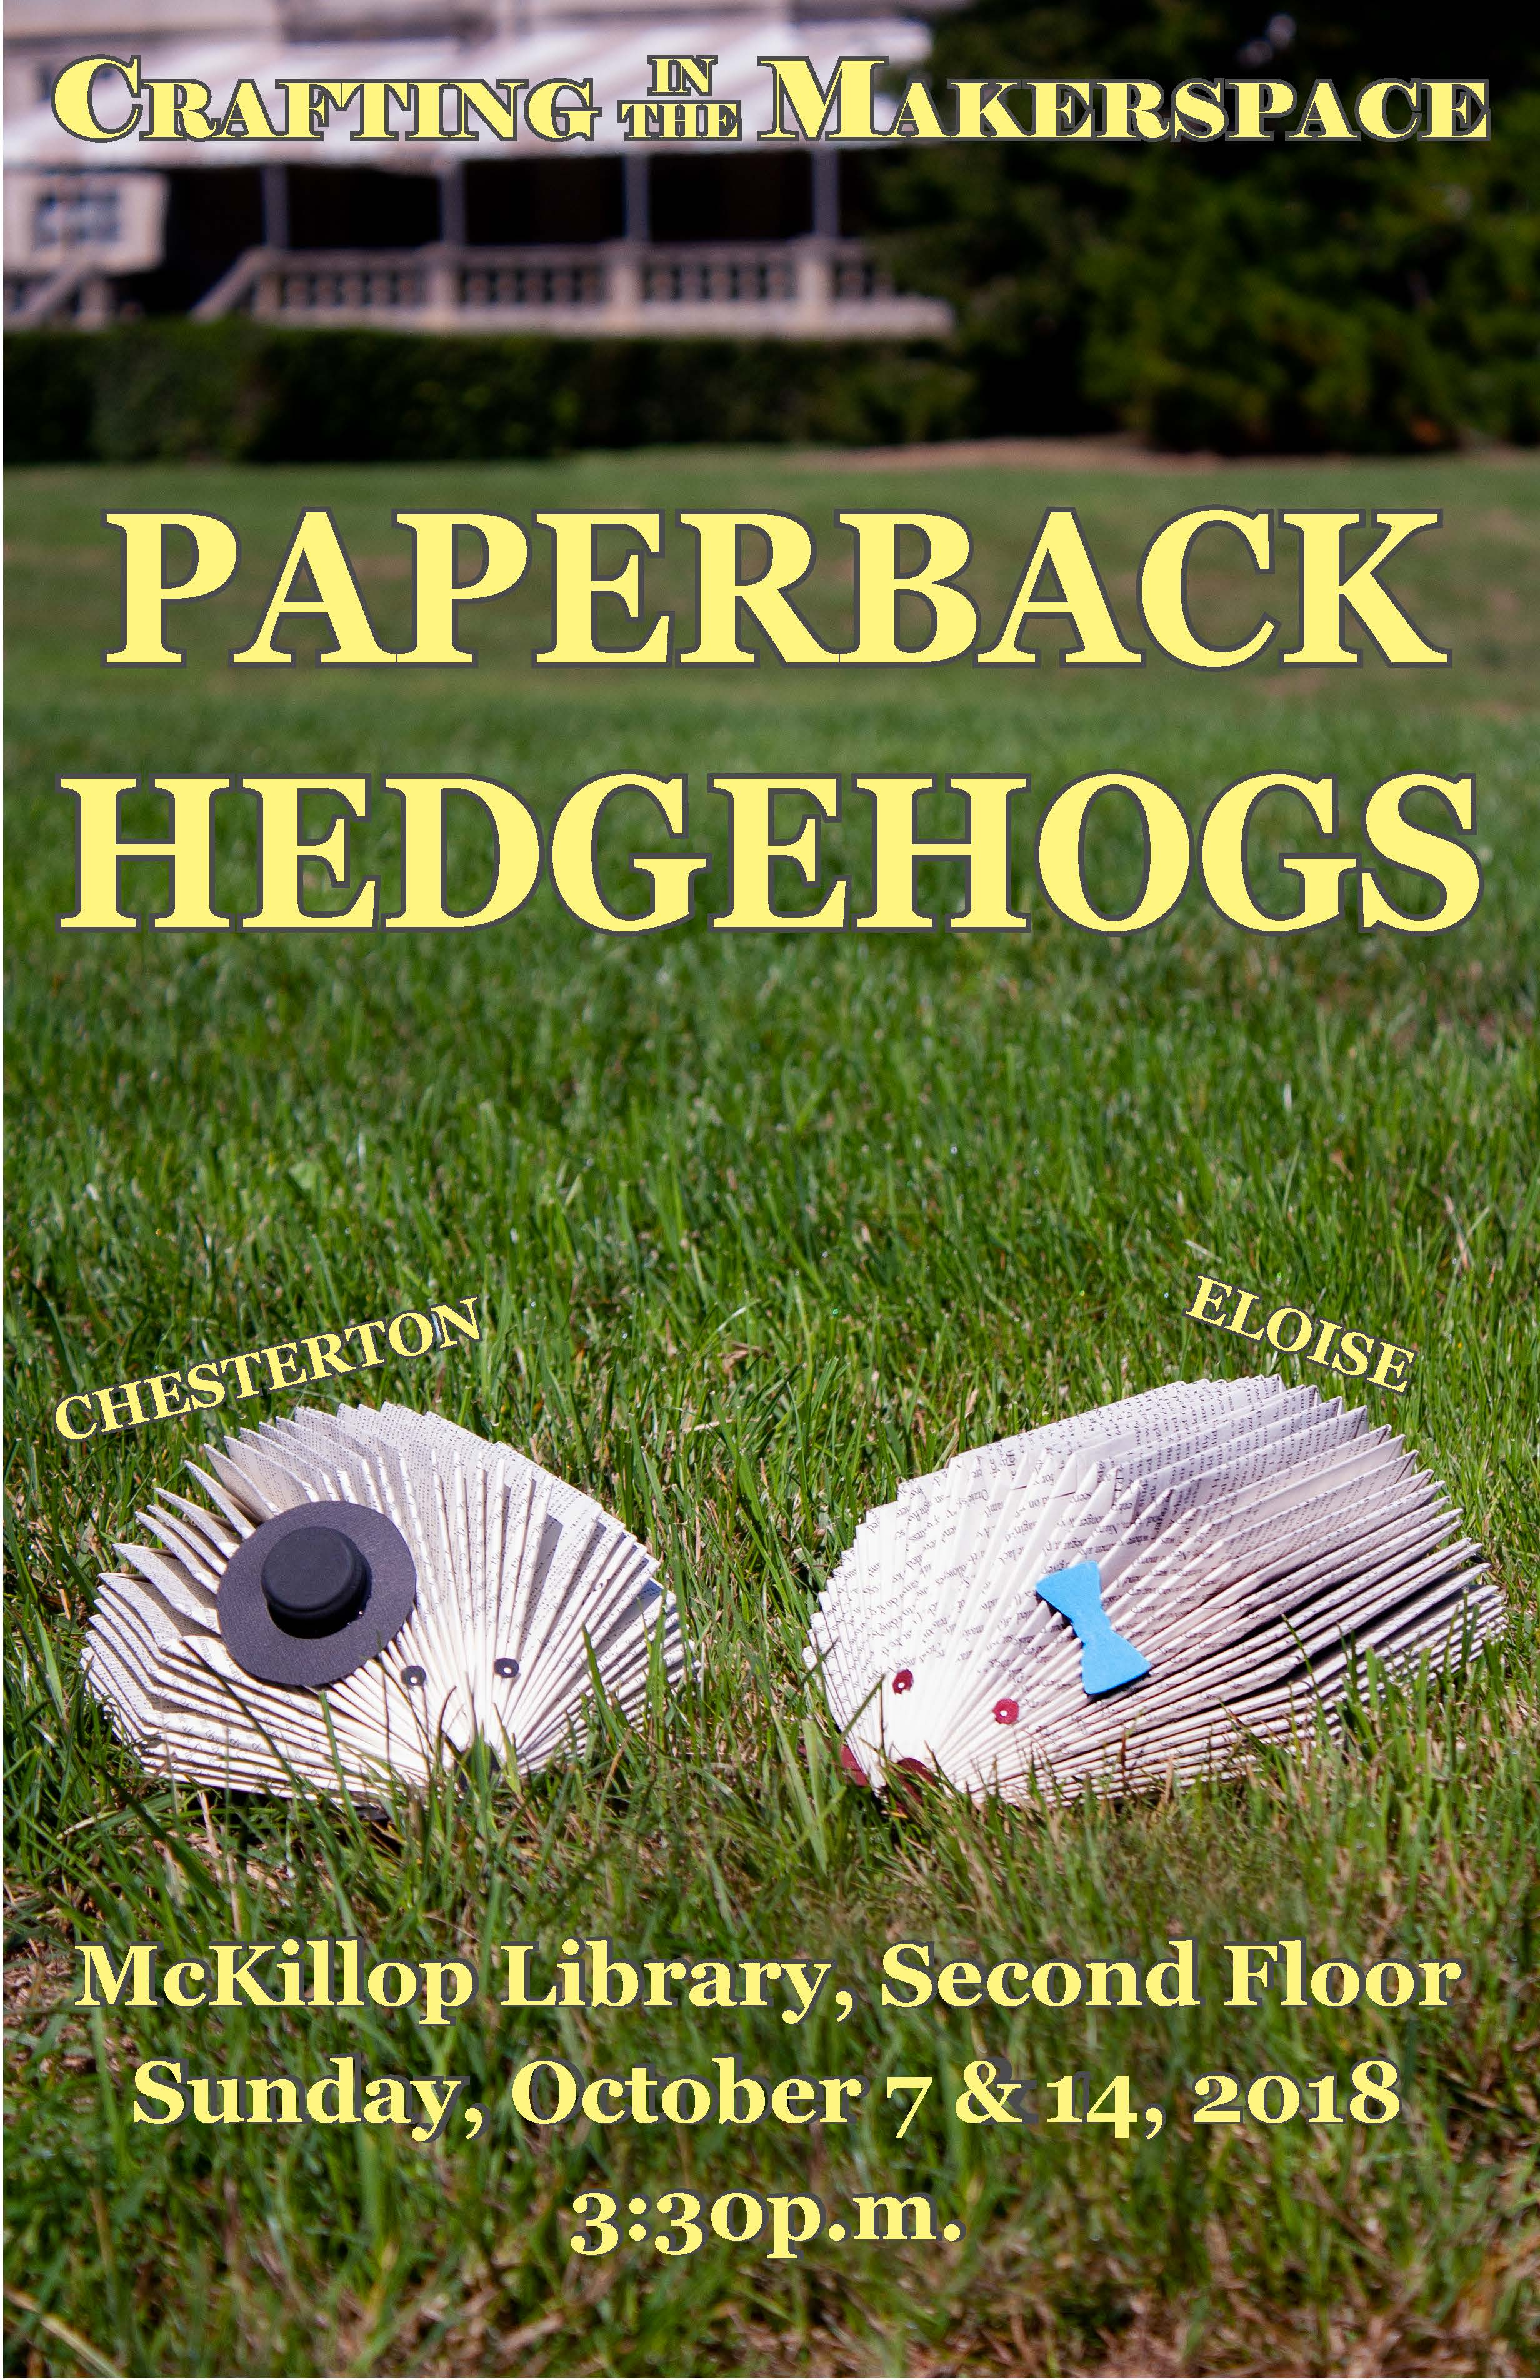 Crafting in the Makerspace: Book Hedgehogs